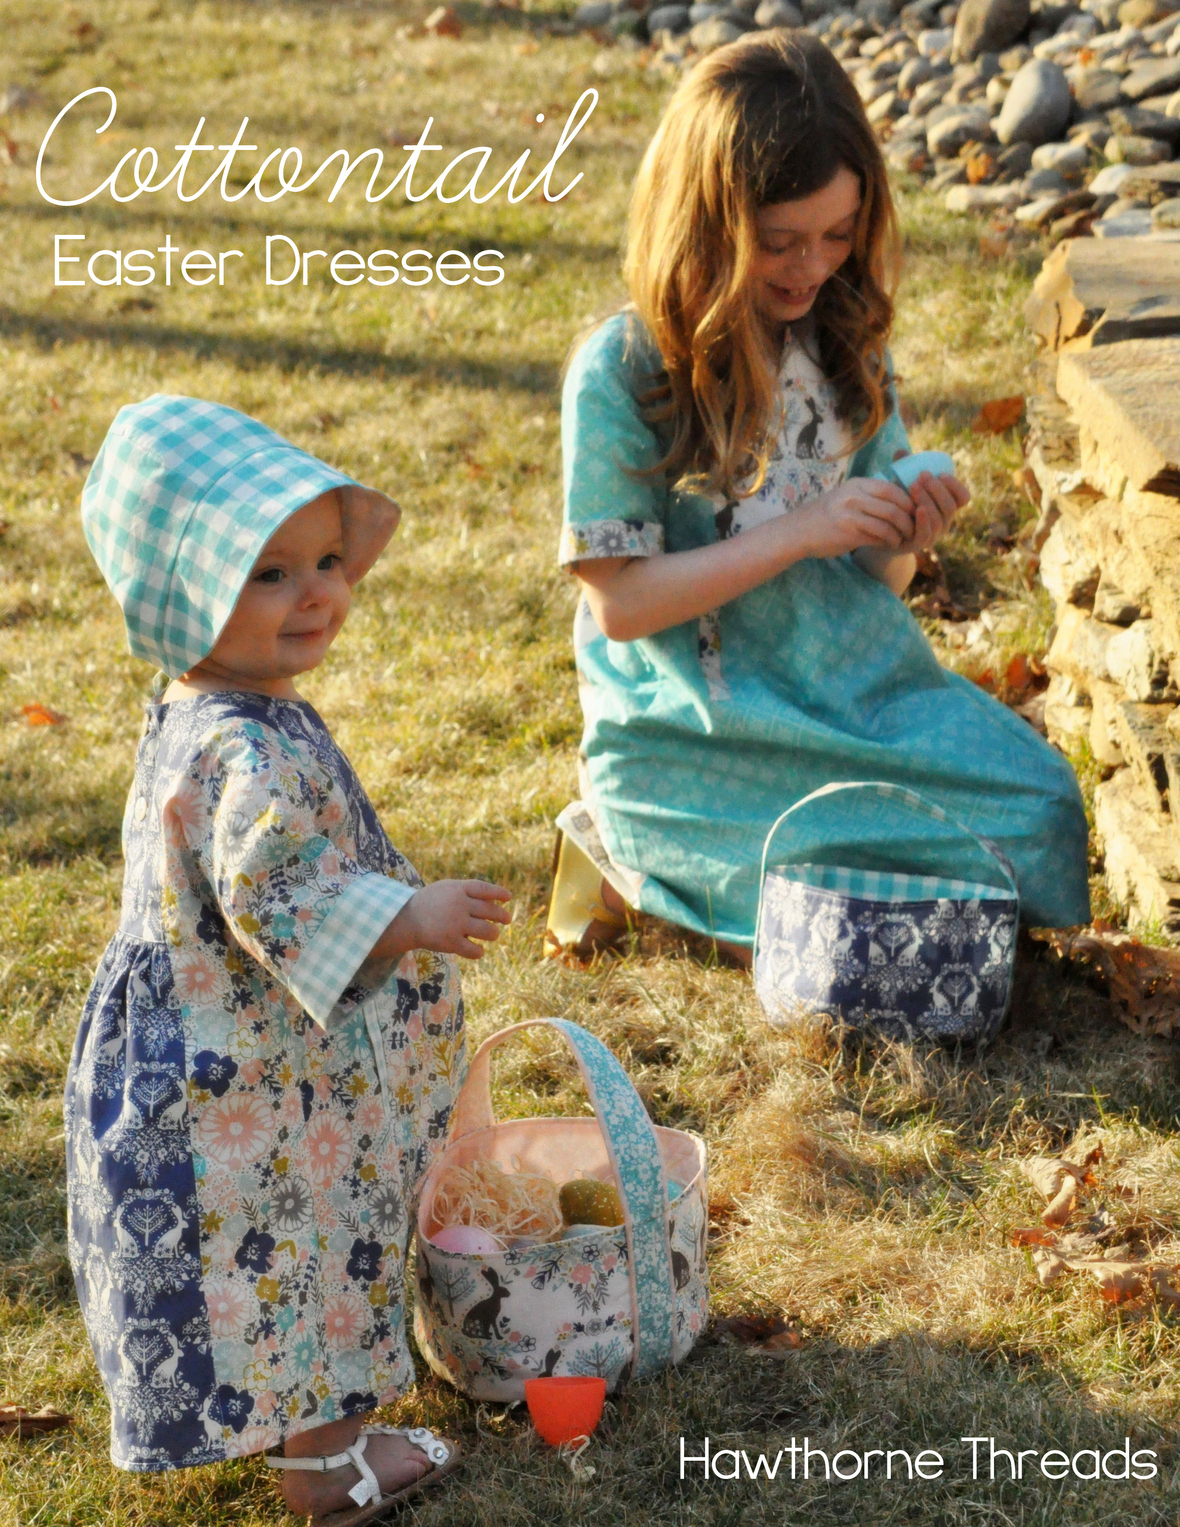 Cottontail Easter Dresses 2